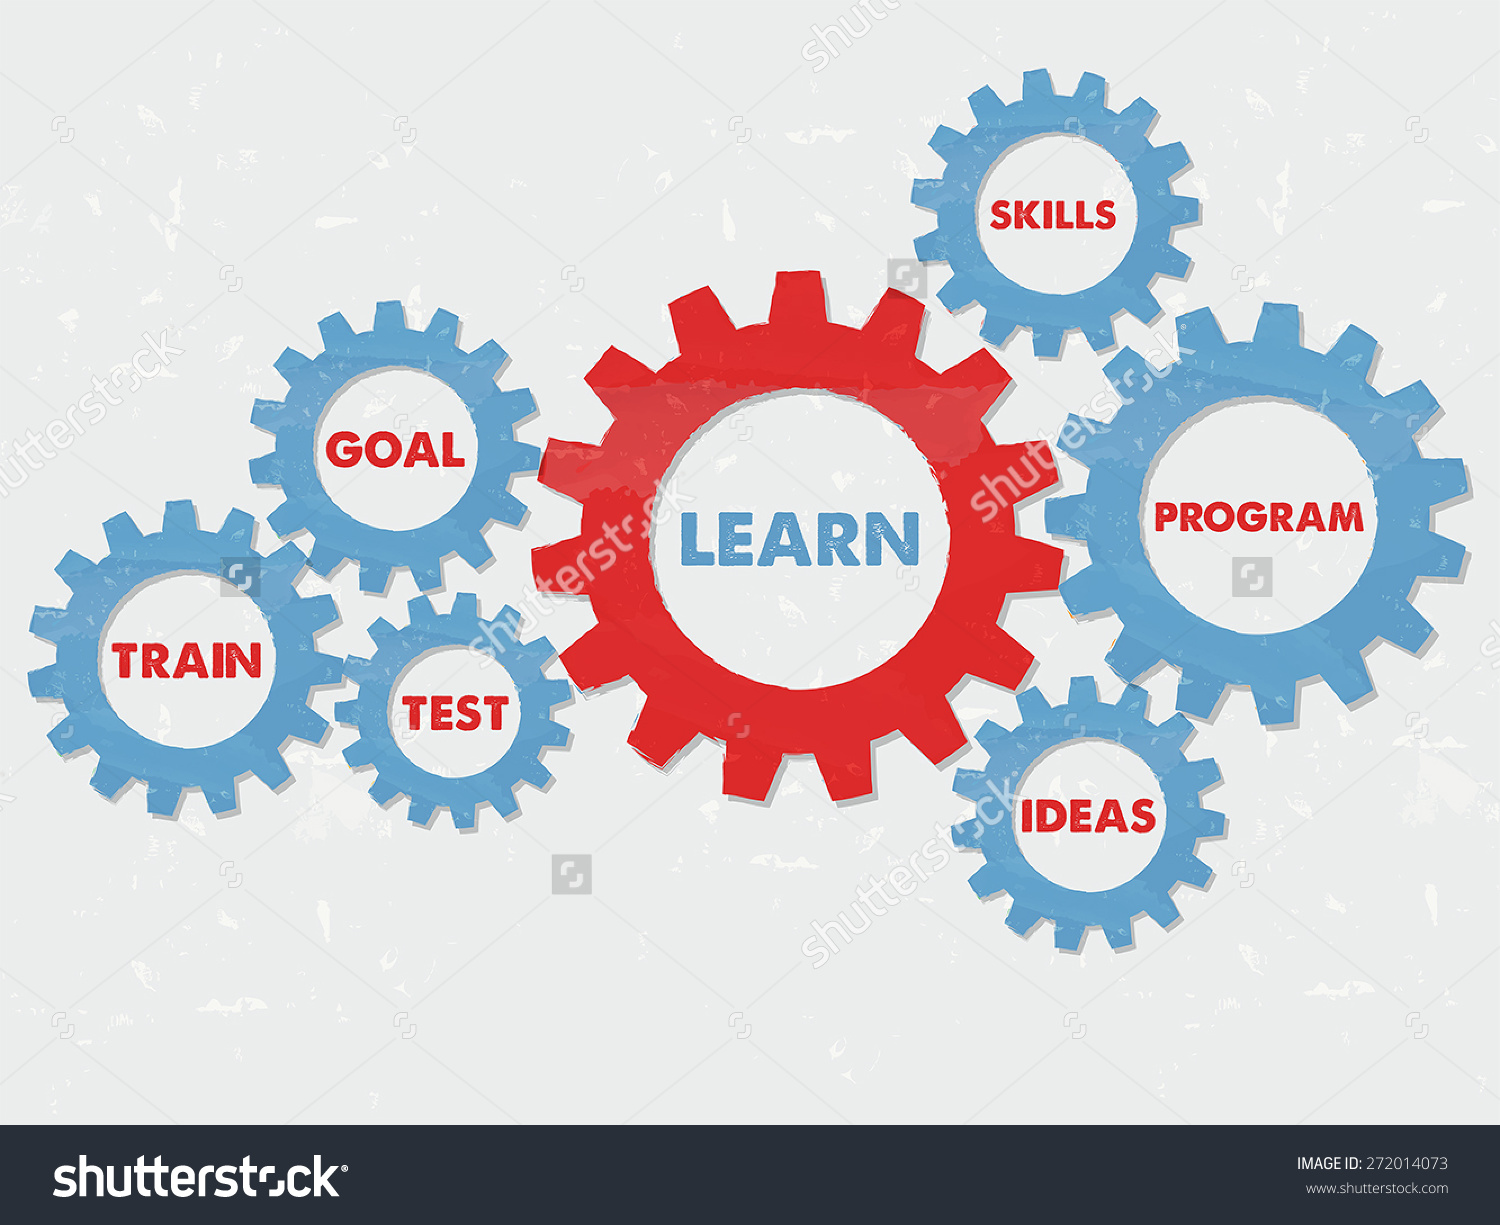 Learn Goal Train Test Skills Program Stock Vector 272014073.